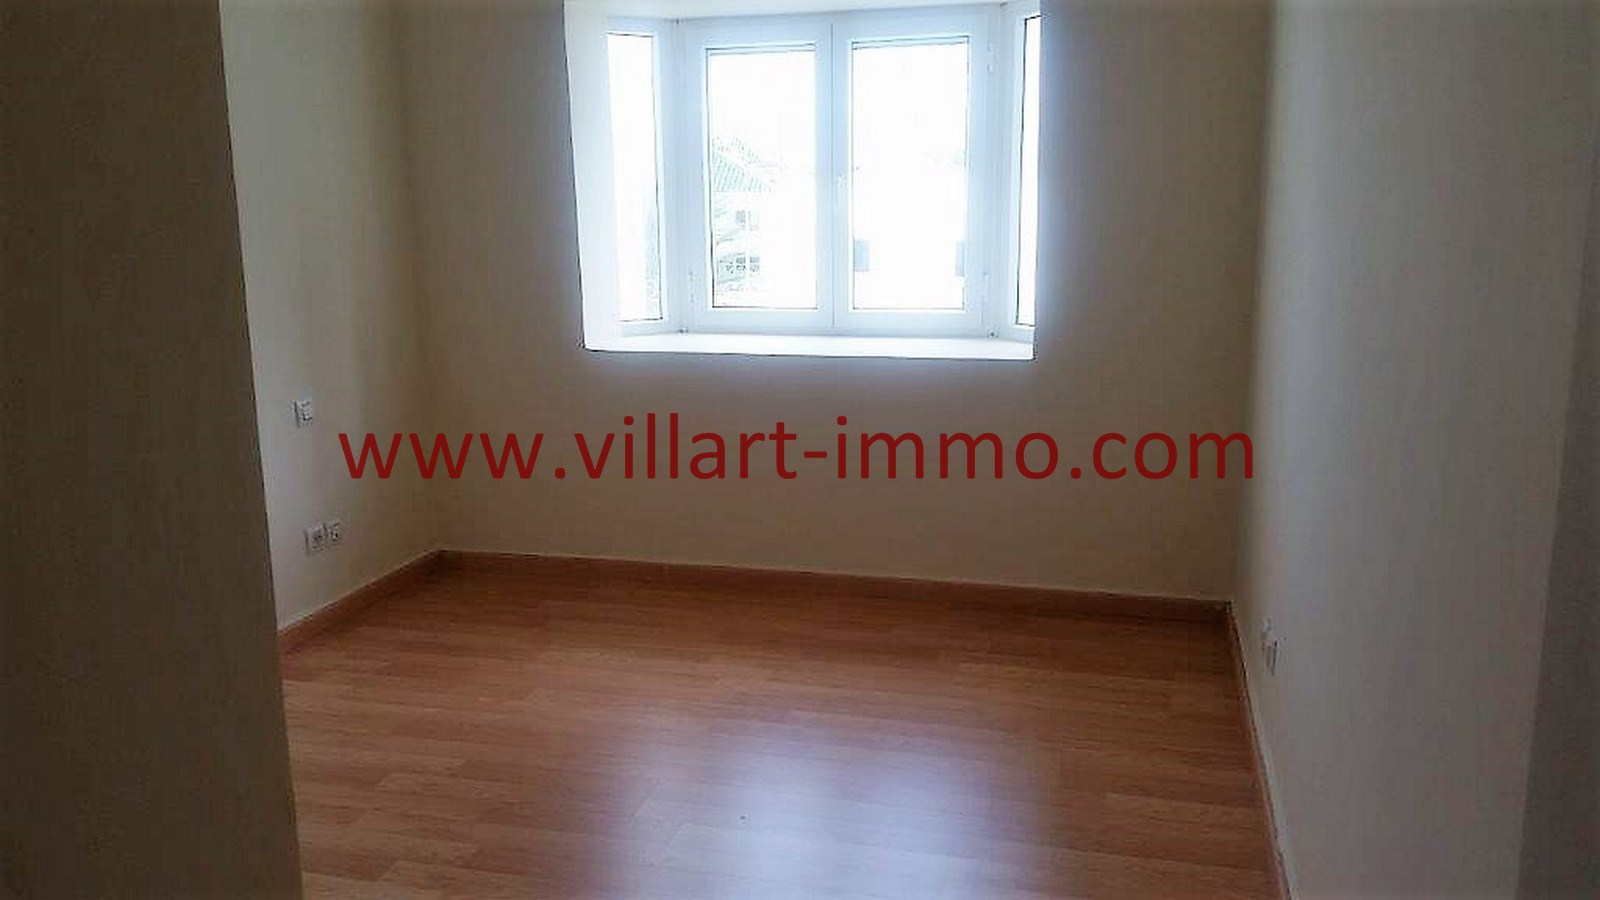 7-Vente-appartement-Tanger-Californie-Chambre1-VA470